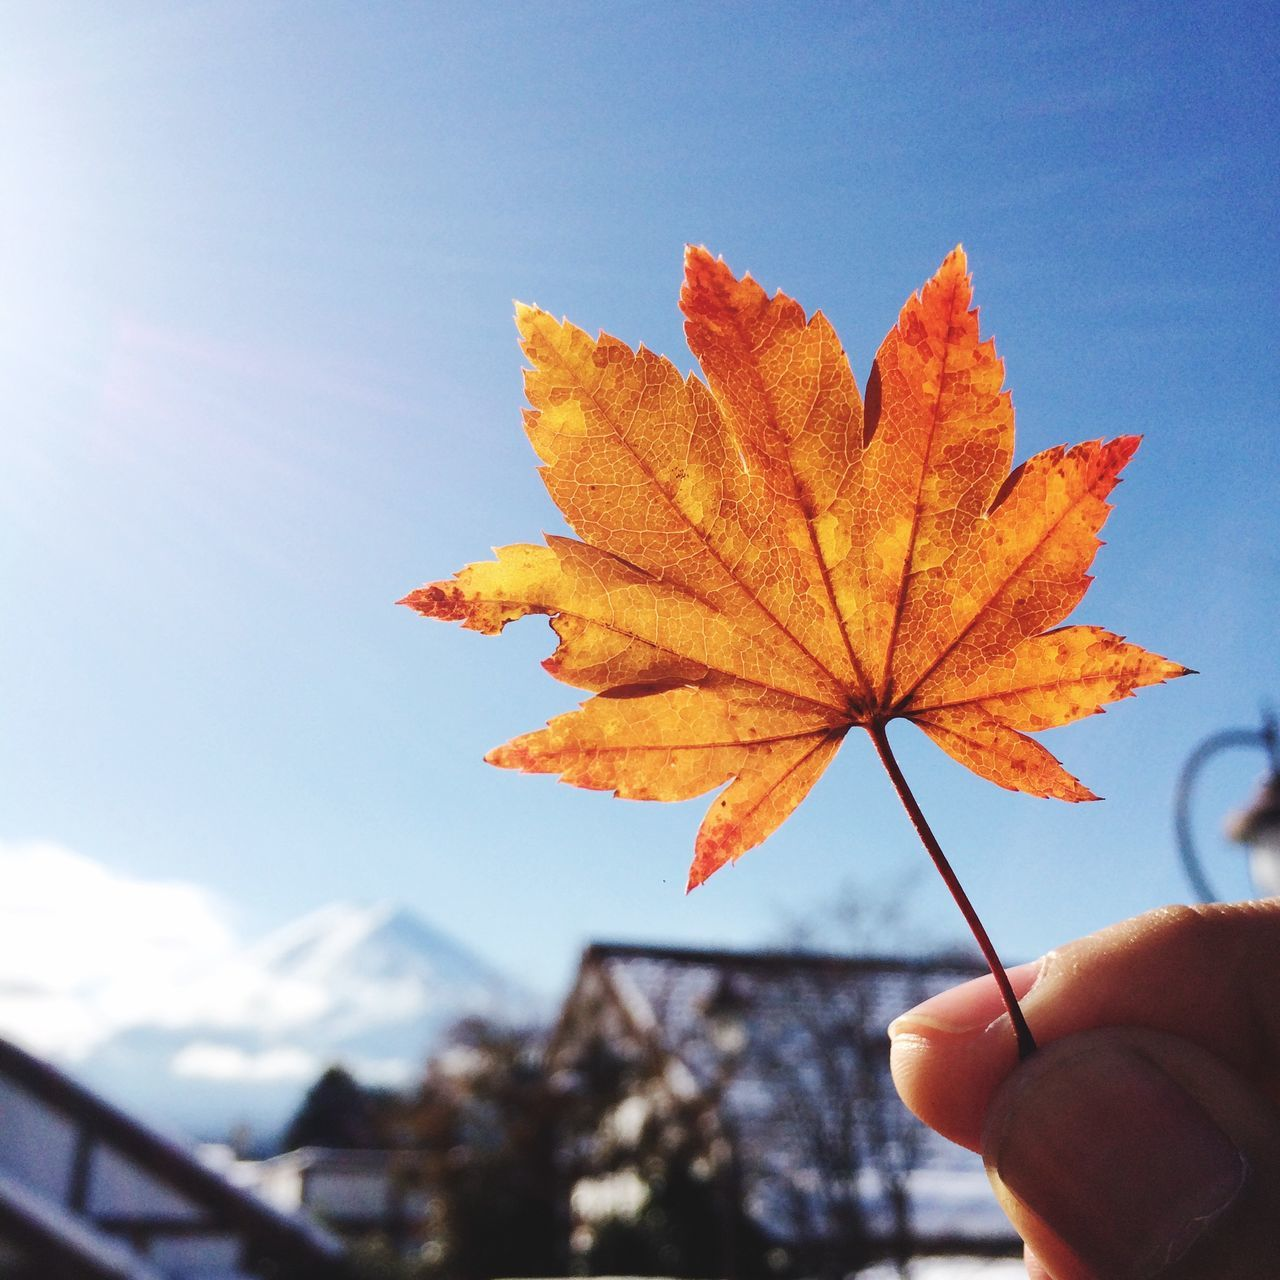 Autumn color. Human Hand One Person Real People Autumn Holding Human Body Part Leaf Human Finger Focus On Foreground Outdoors Maple Leaf Leisure Activity Change Day Sky Close-up Nature